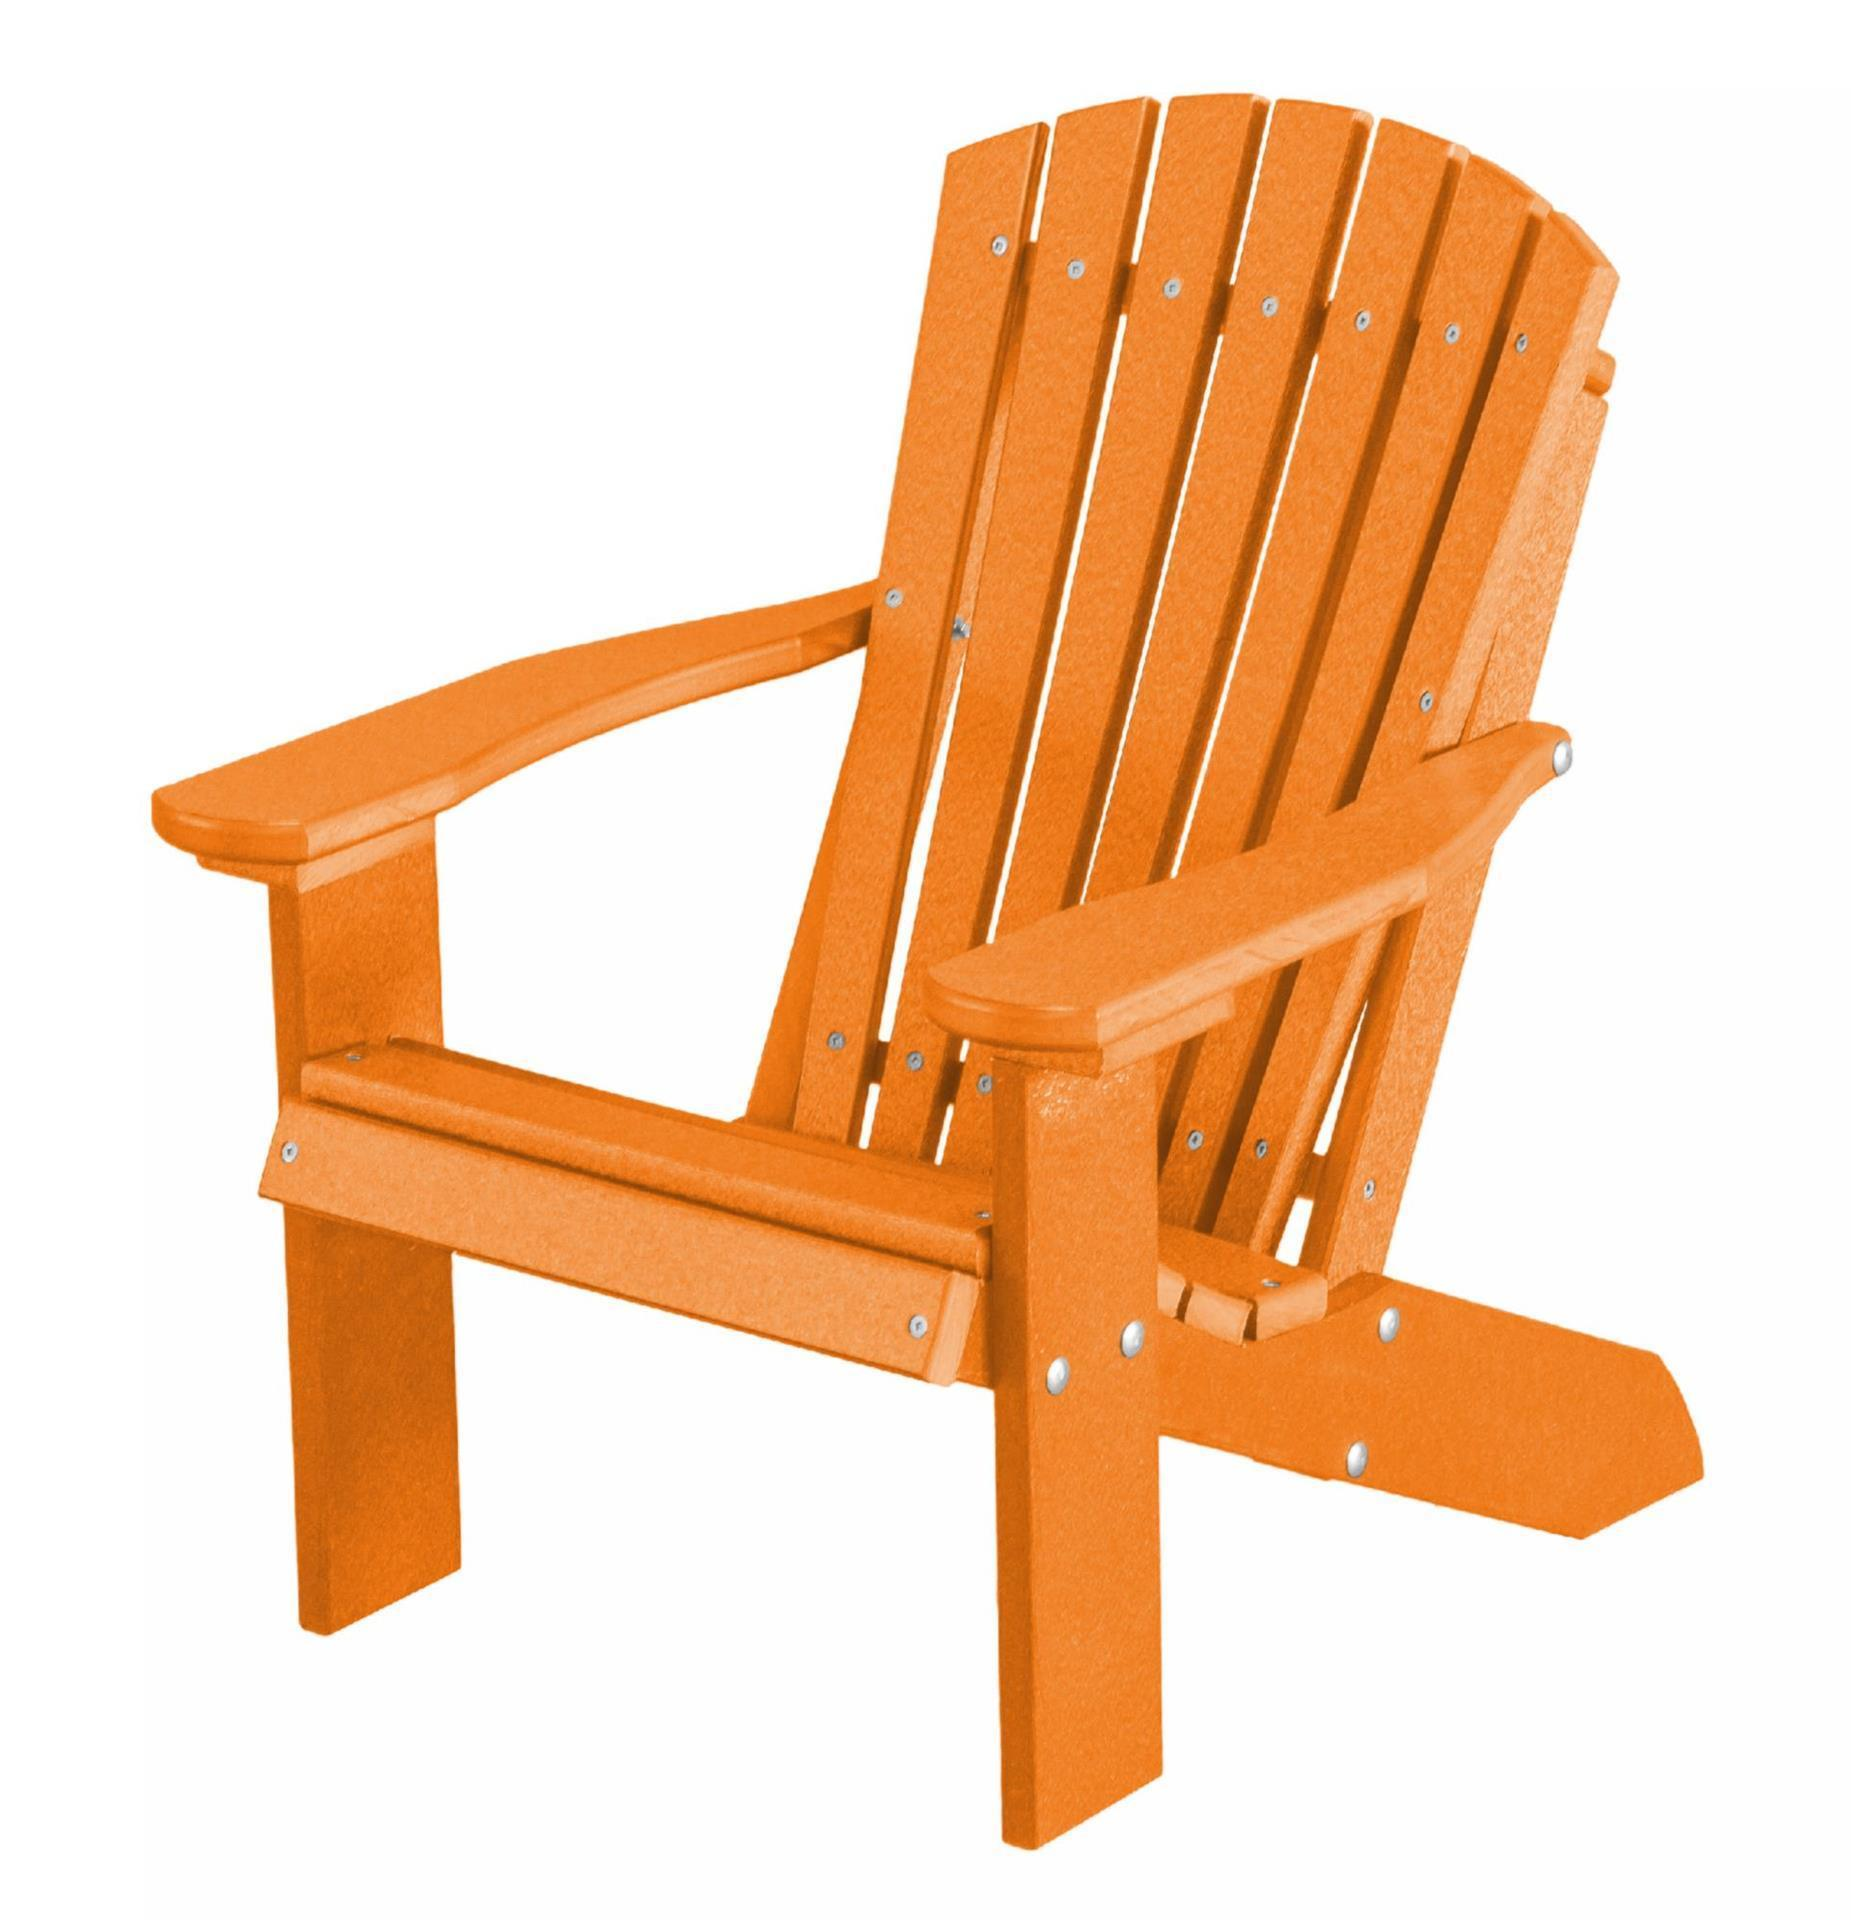 Eco Poly Outdoor All Weather Childu0027s Adirondack Chair